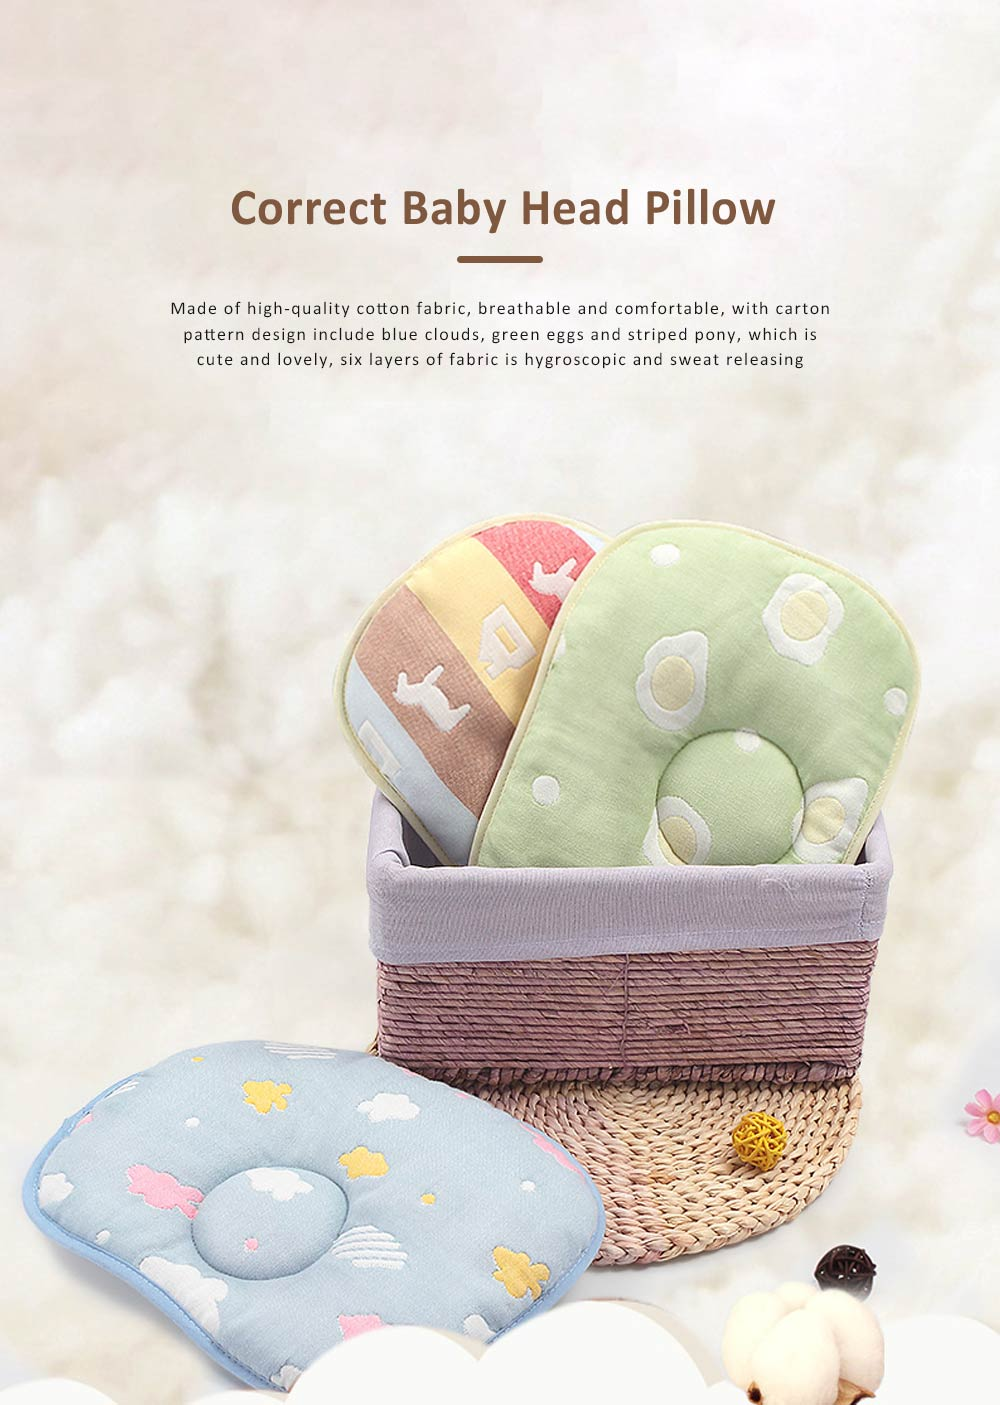 Correct Baby Head Pillow for 0-6 Months Baby, Carton Pattern Six Cotton Layers Finalize Newborn Pillow 0